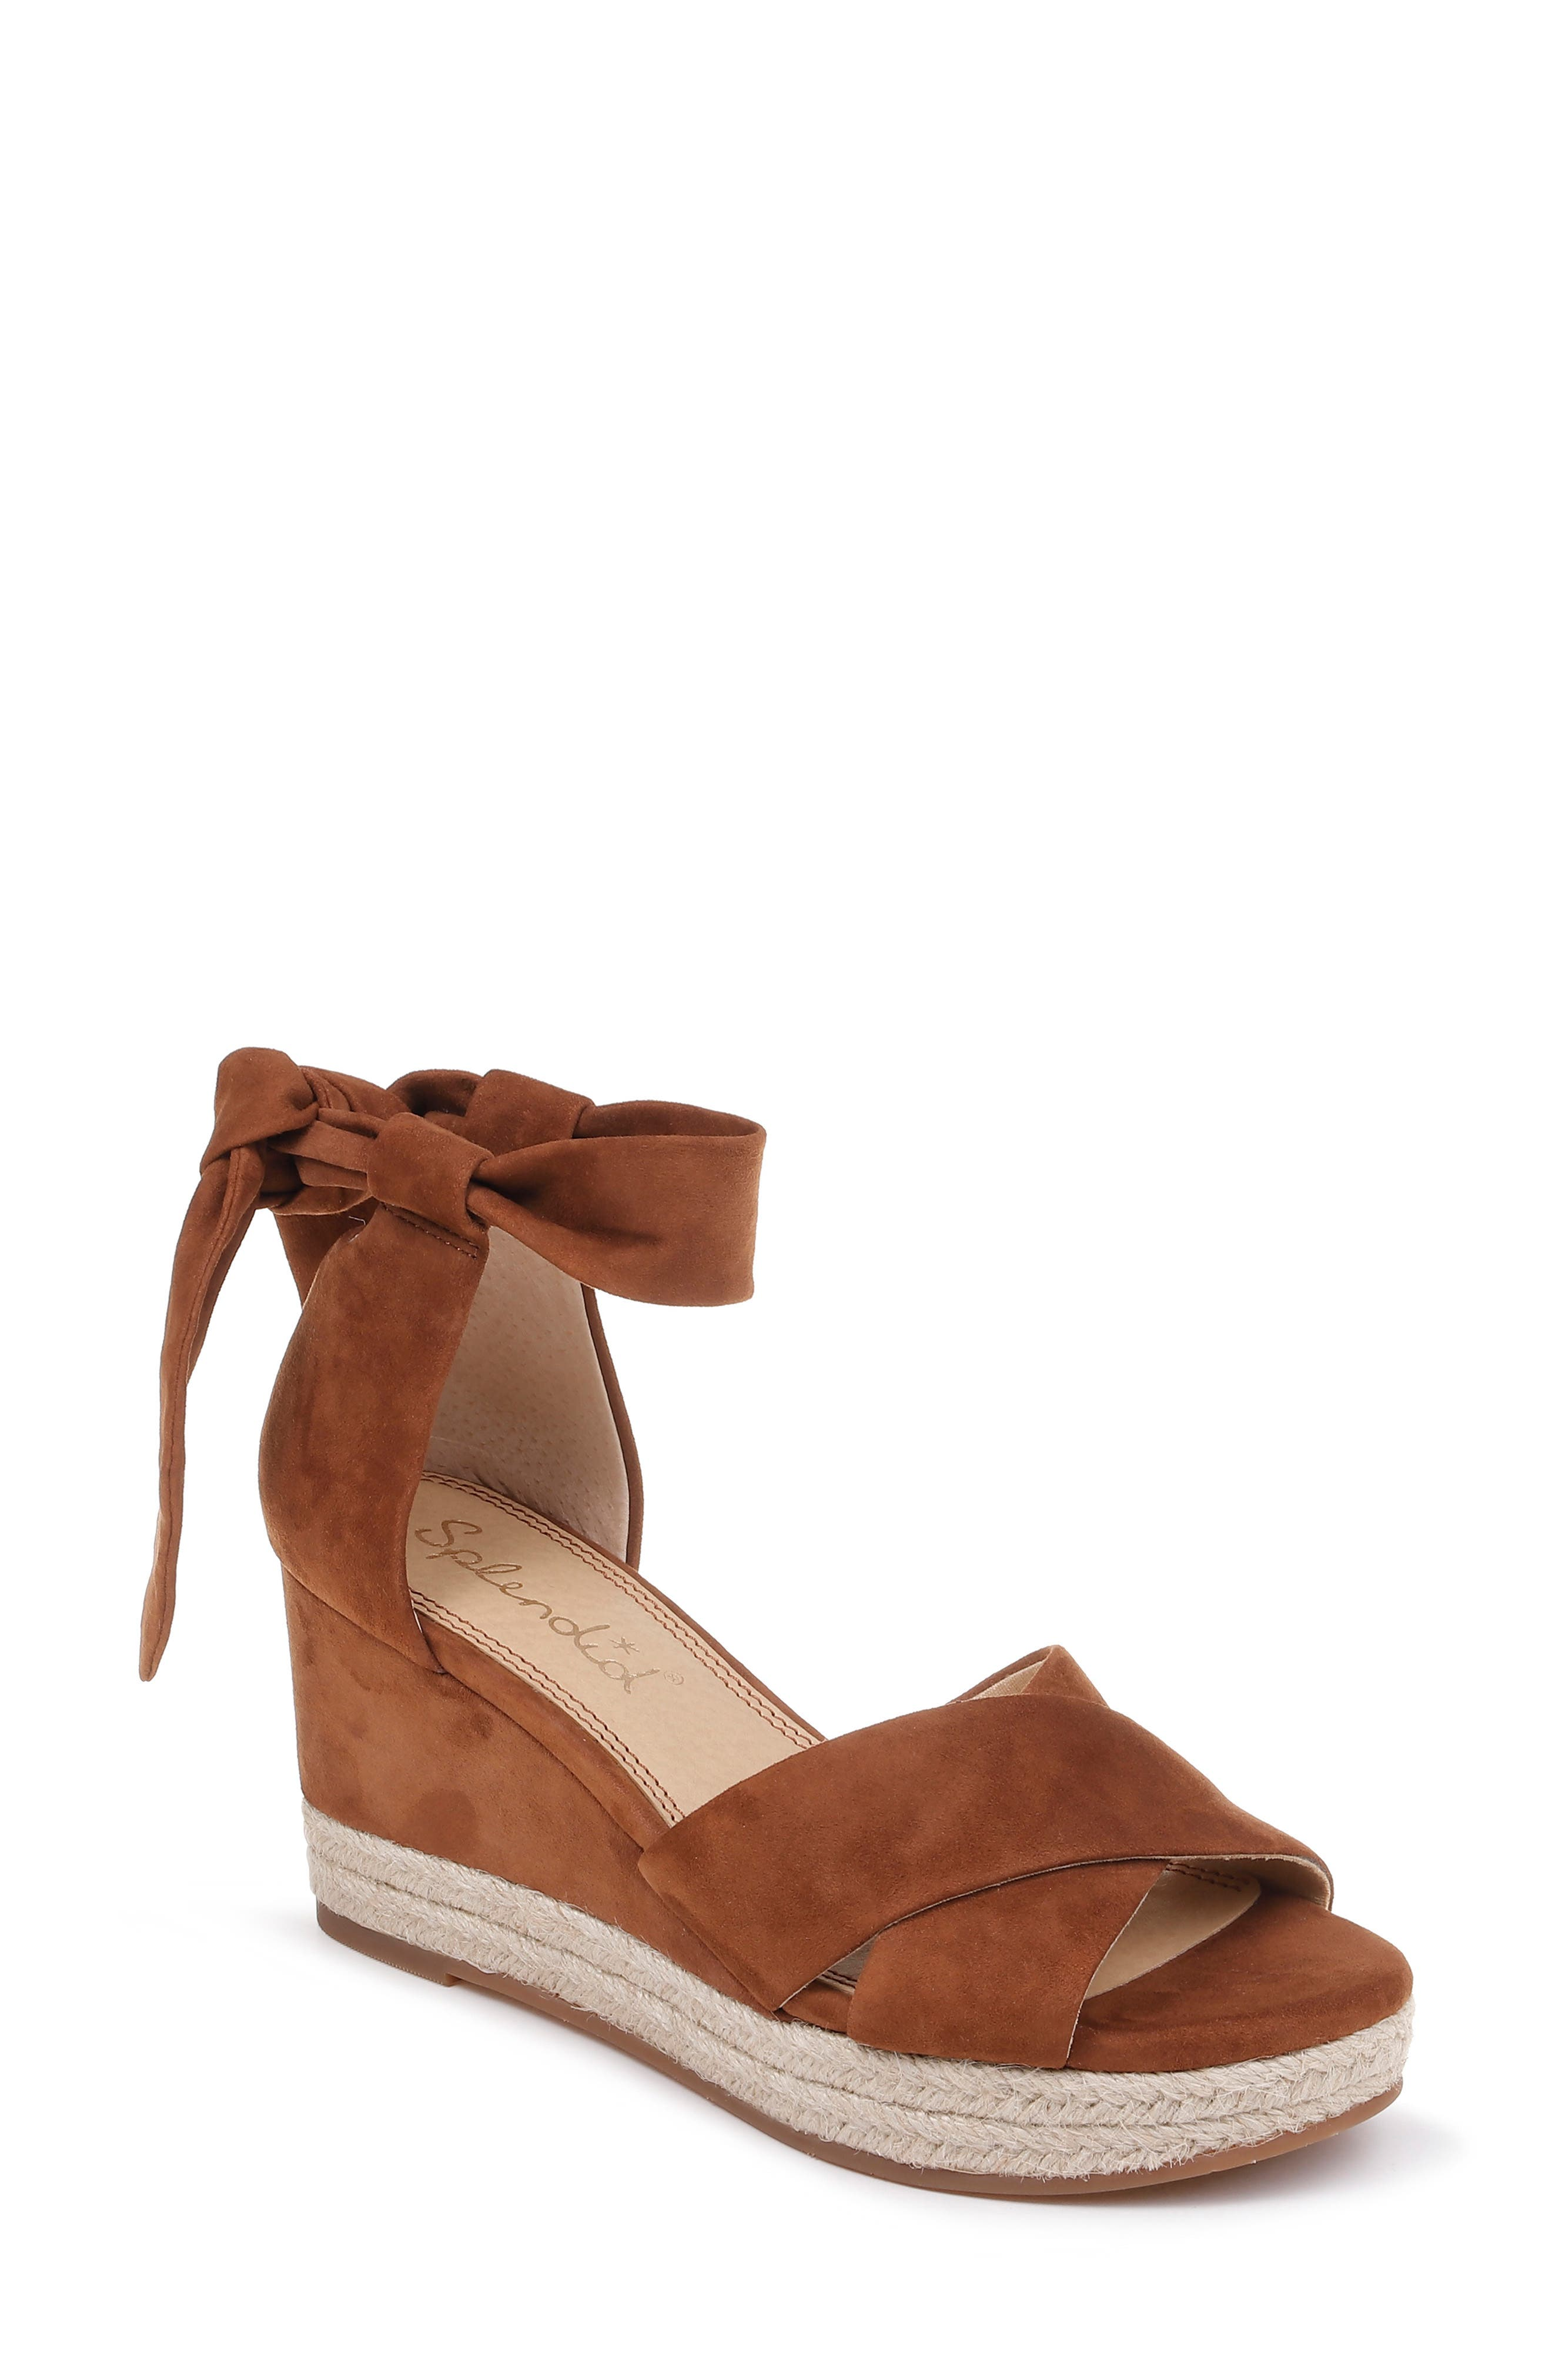 SPLENDID, Terrence Ankle Wrap Wedge Sandal, Main thumbnail 1, color, CHESTNUT SUEDE